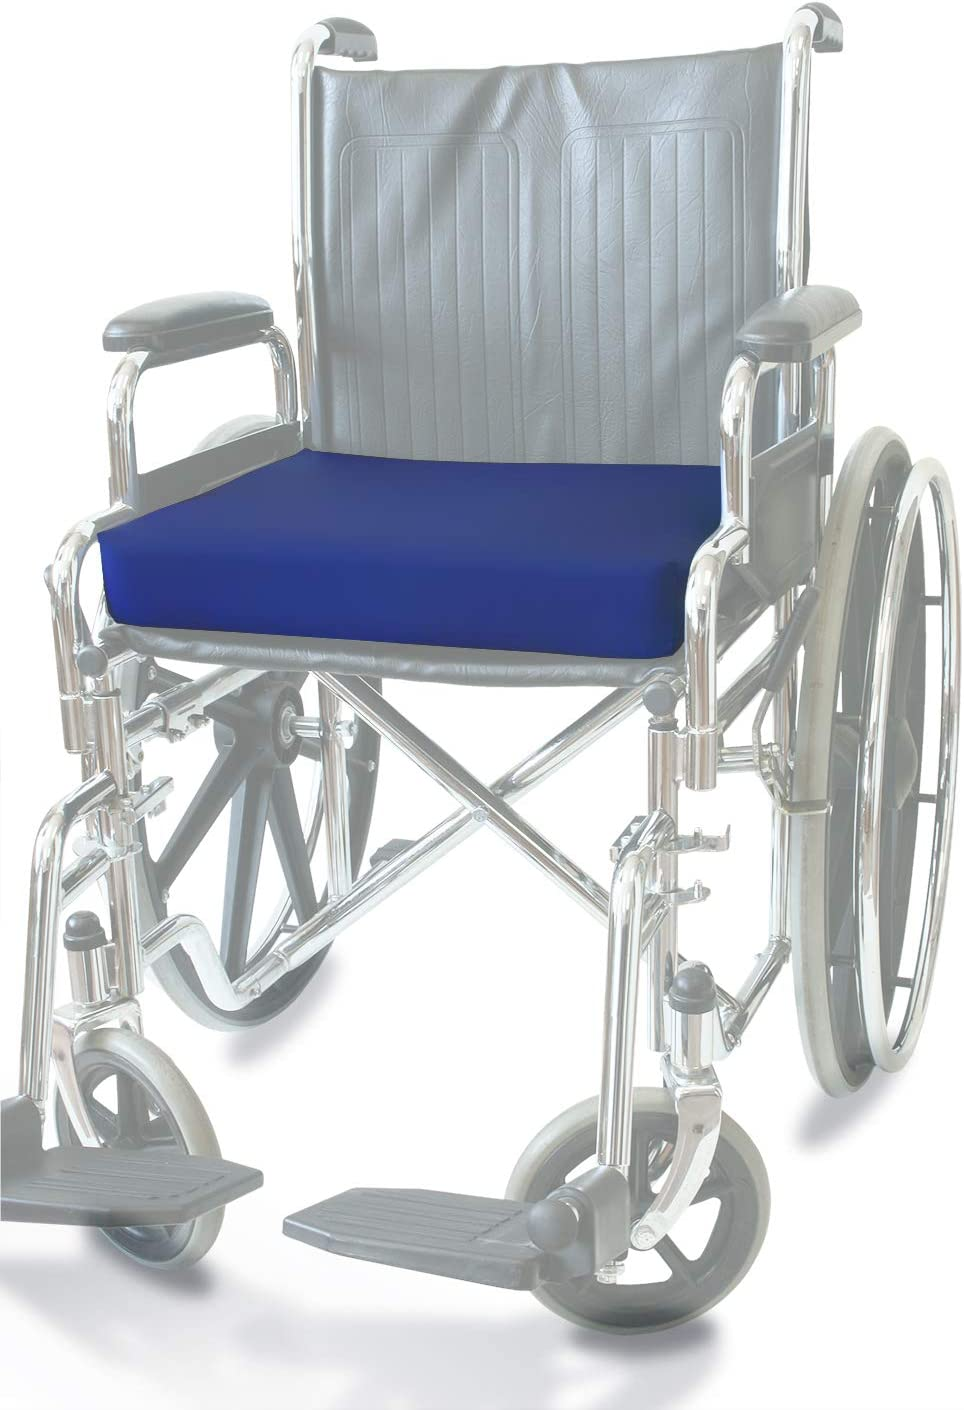 NYOrtho Lowest price challenge APEX Comfortable Wheelchair Free Shipping Cheap Bargain Gift Cushion with - Gel Cooling